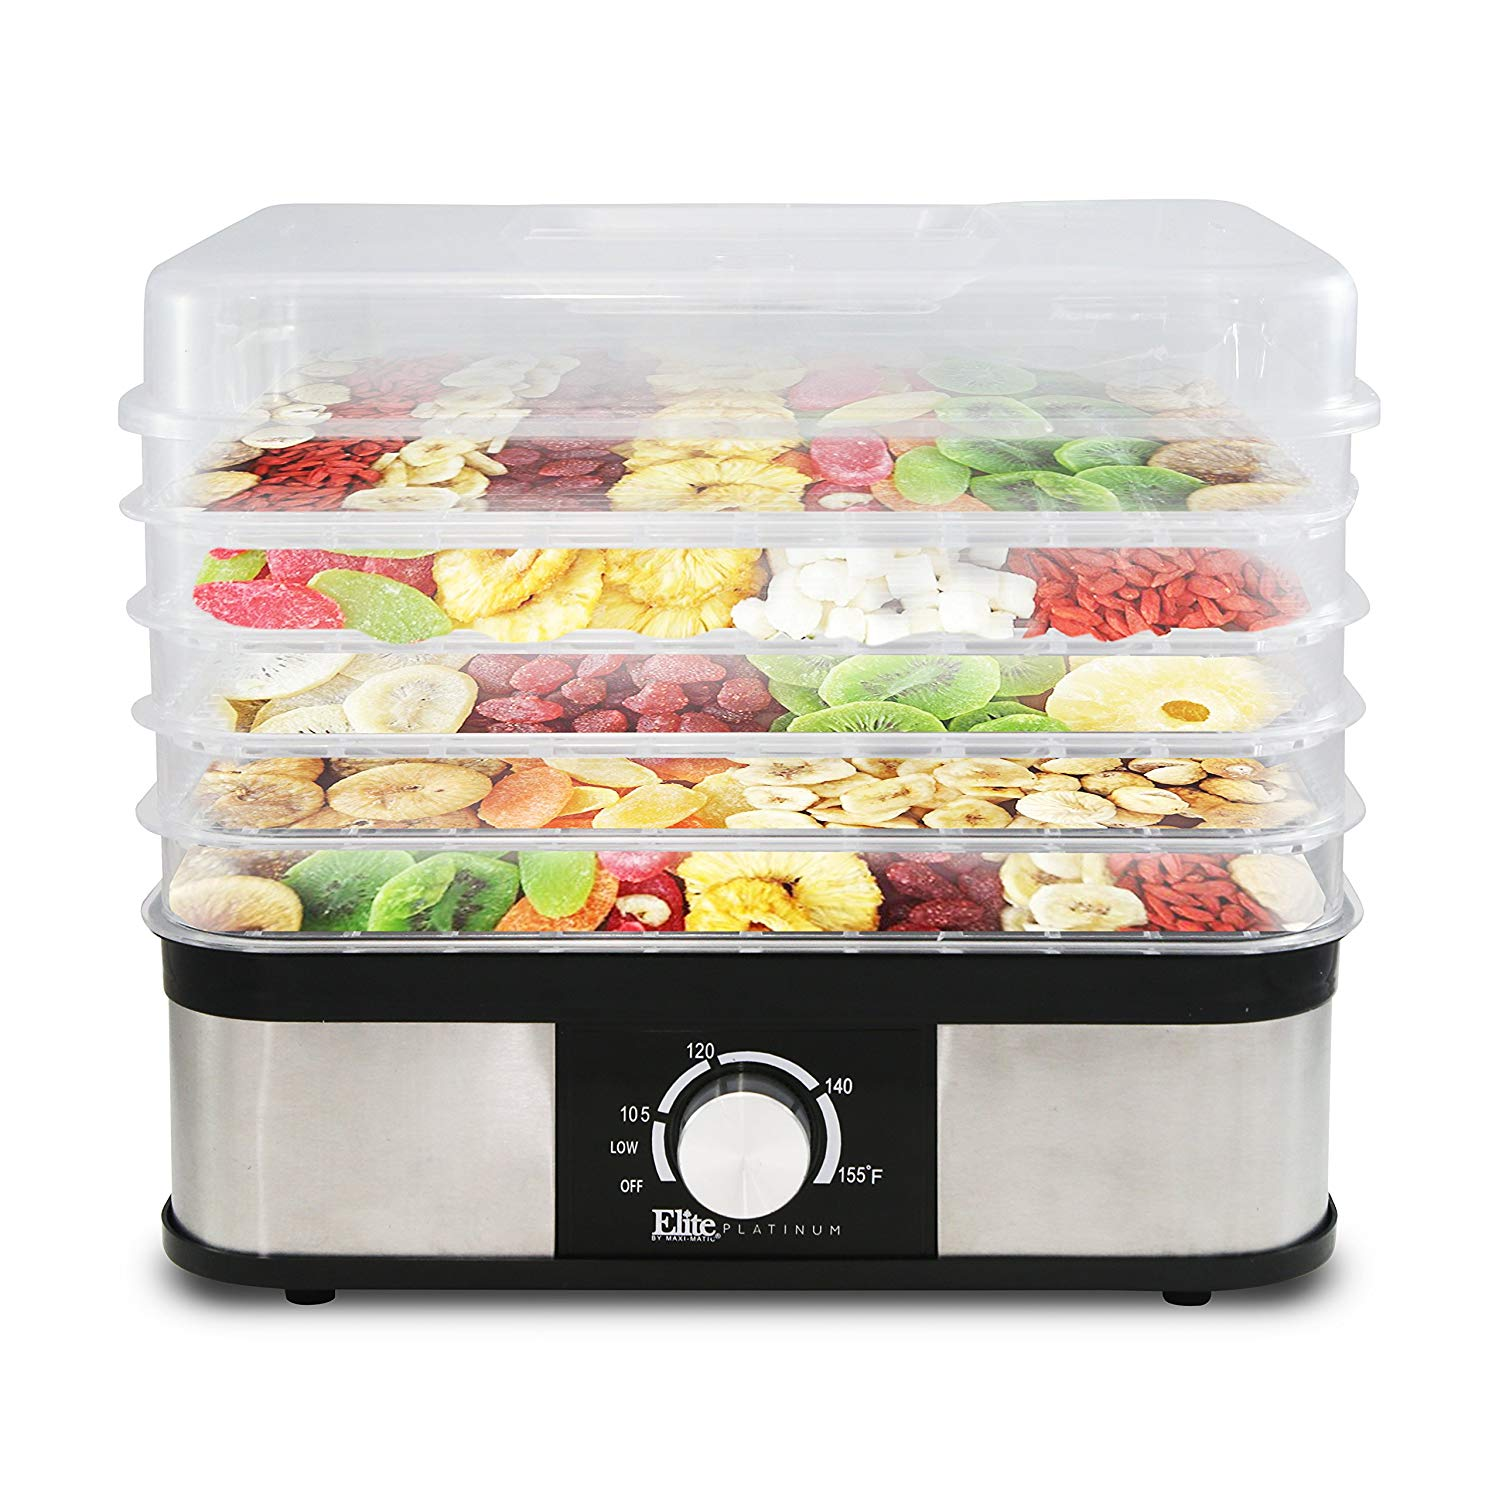 ELITE PLATINUM EFD-1159 FOOD DEHYDRATOR 5 TRAY STACKABLE